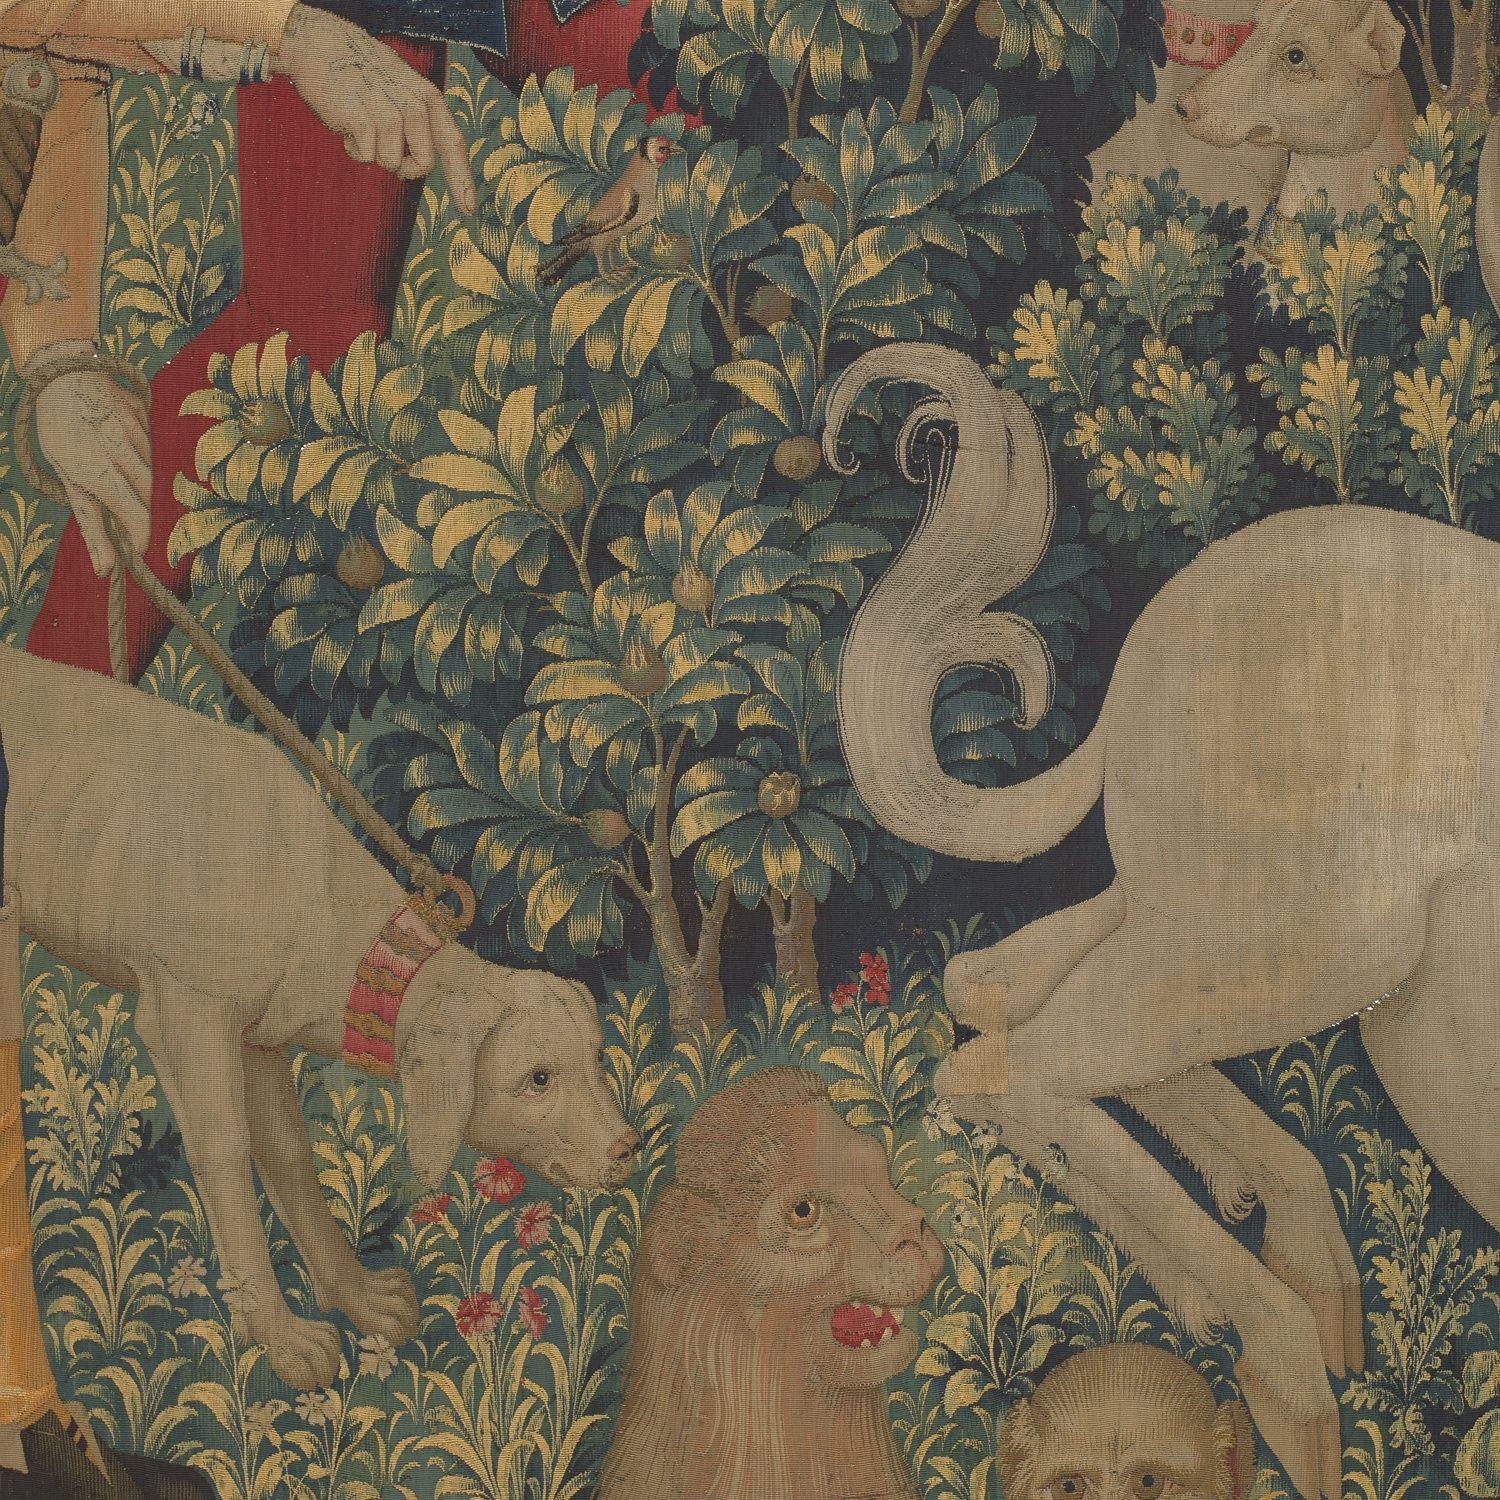 Medlar tree in the tapestry <em>The Unicorn is Found</em>